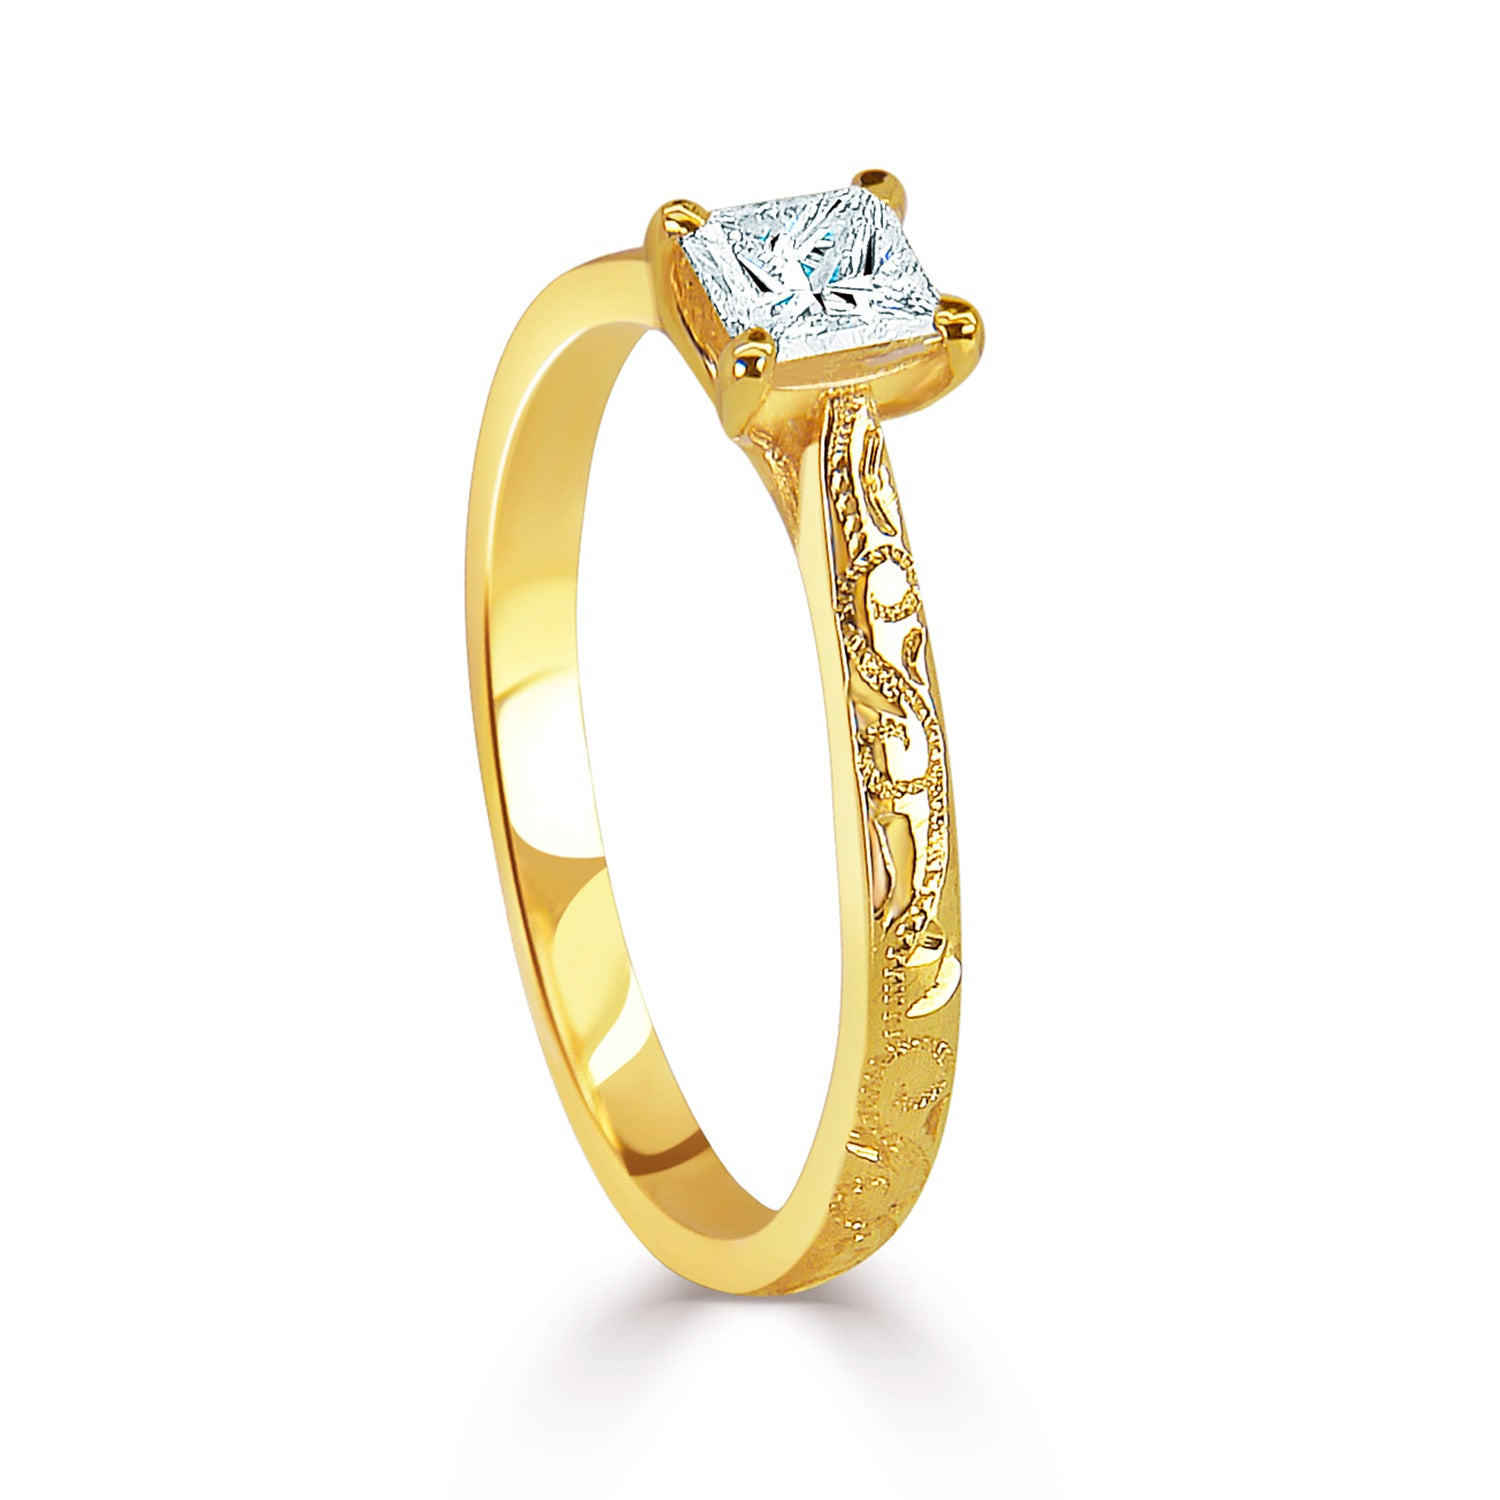 Bespoke Ikem Princess Cut Diamond Engagement Ring